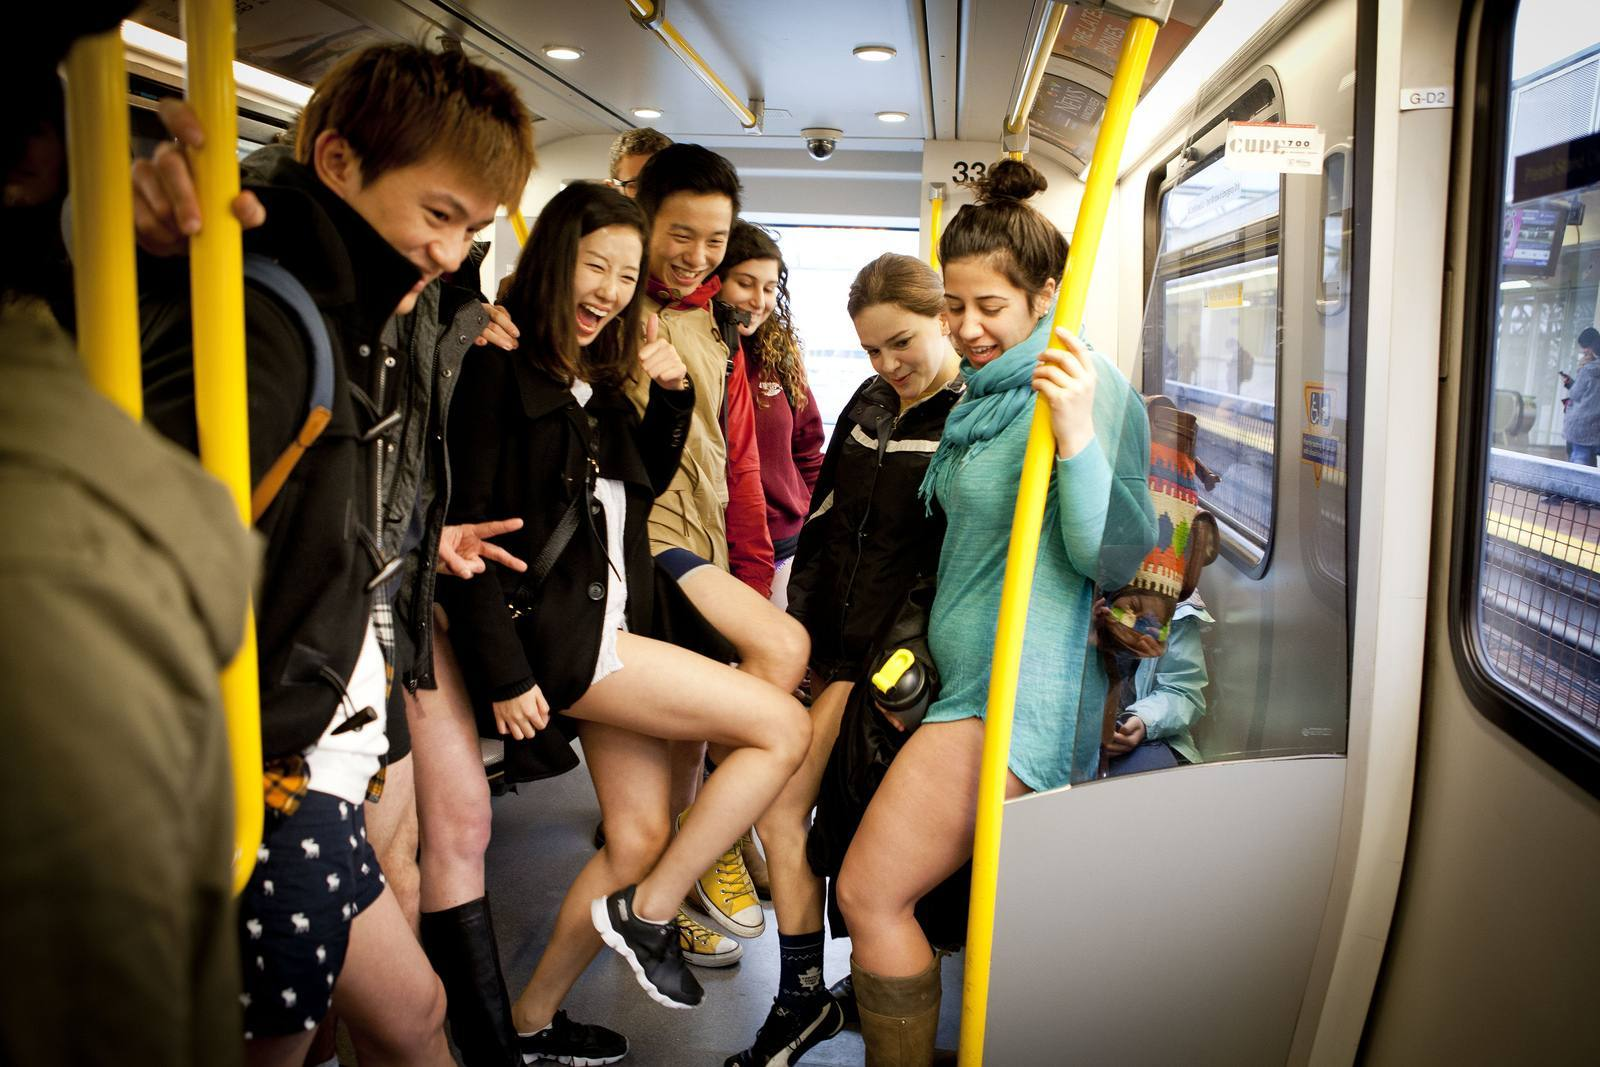 no pants No Pants Skytrain Ride 2015 in Vancouver